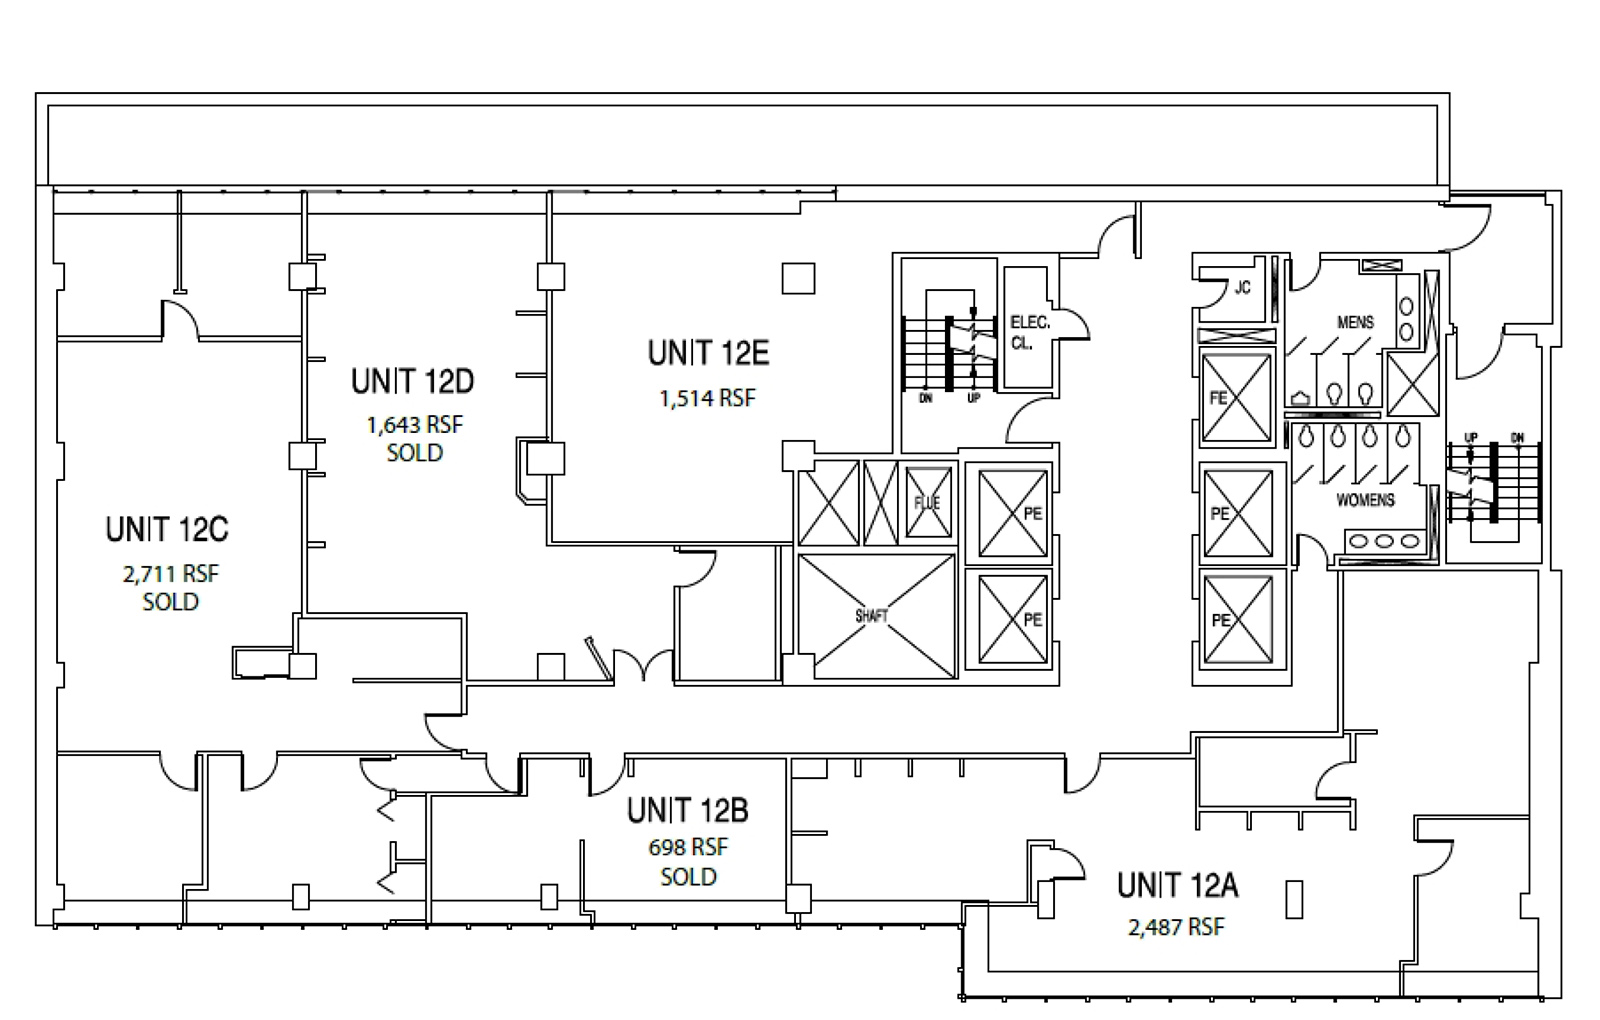 131 West 33rd Street - Floor Plan